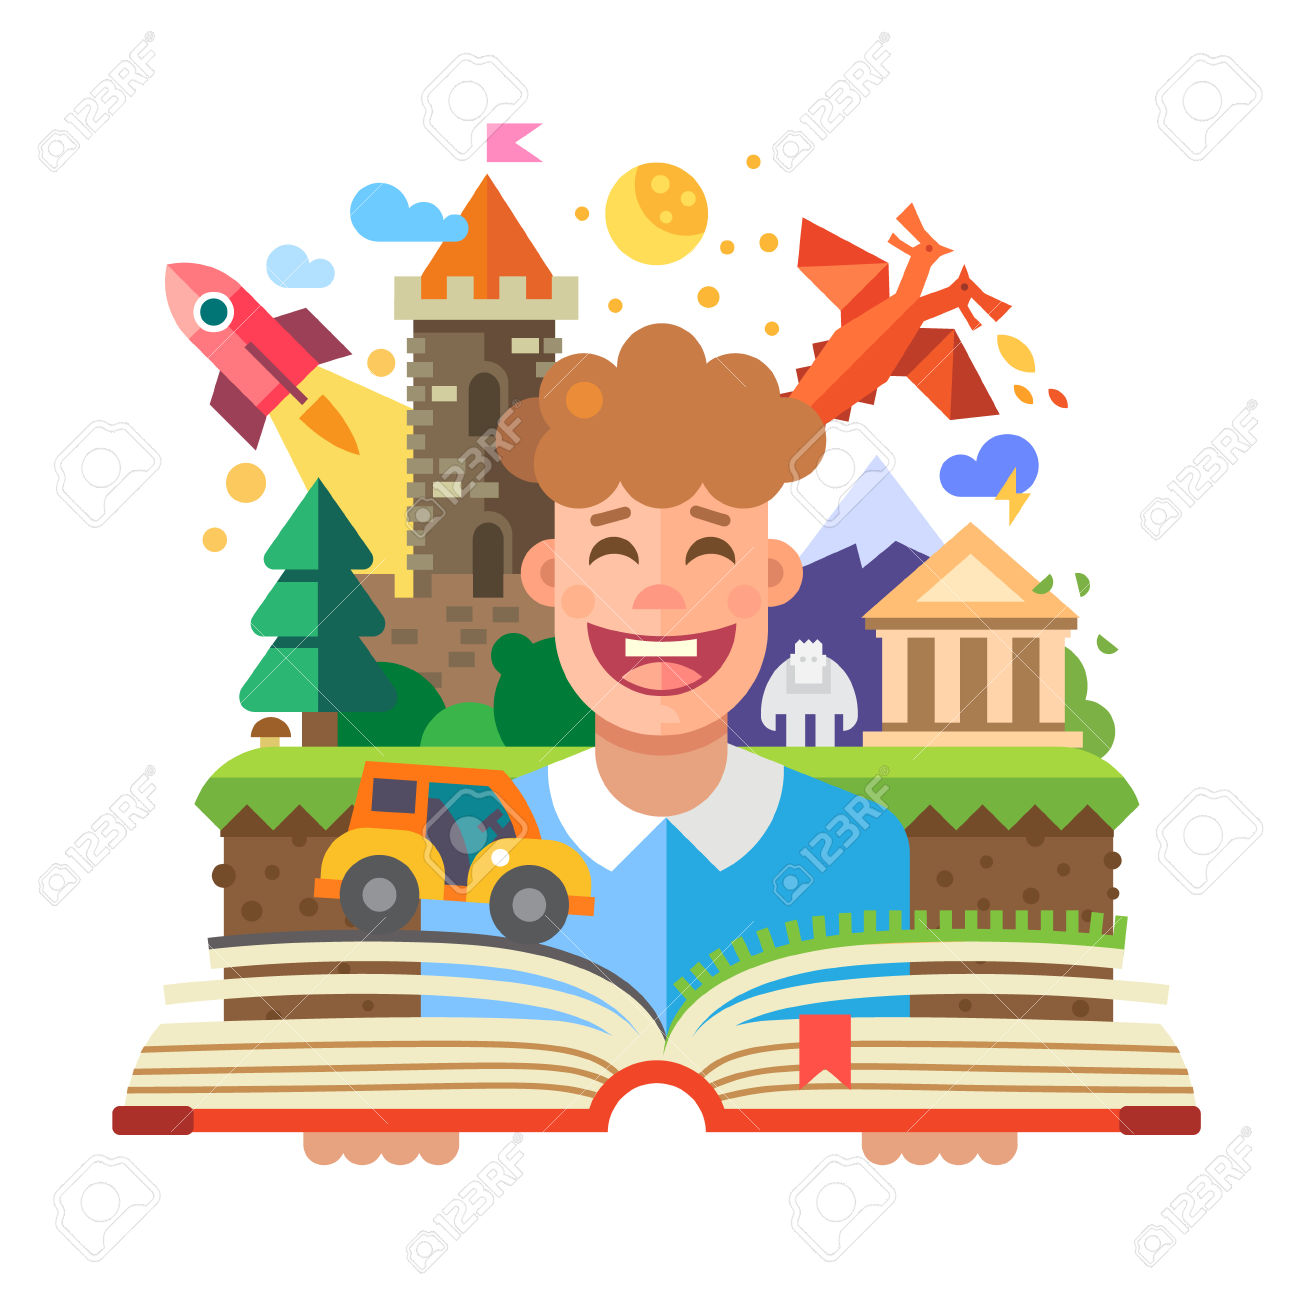 Open Book Imagination Clipart Free.